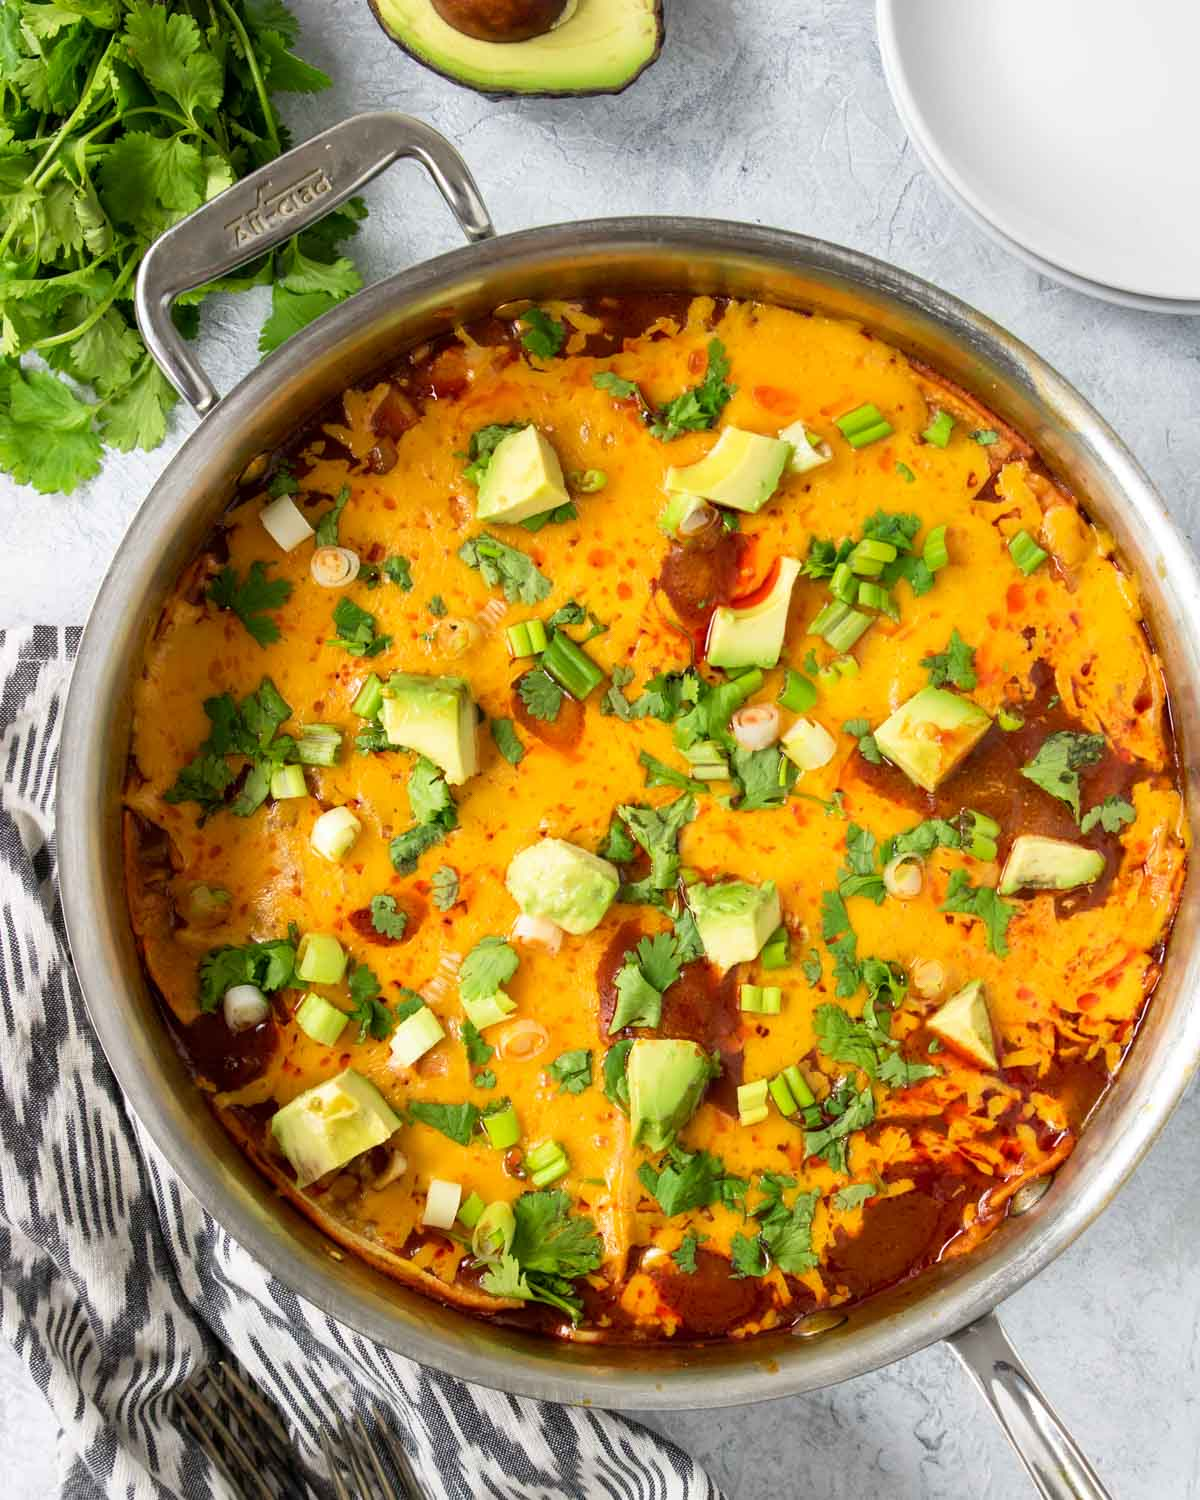 Skillet Enchiladas topped with cilantro, avocado, and green onions